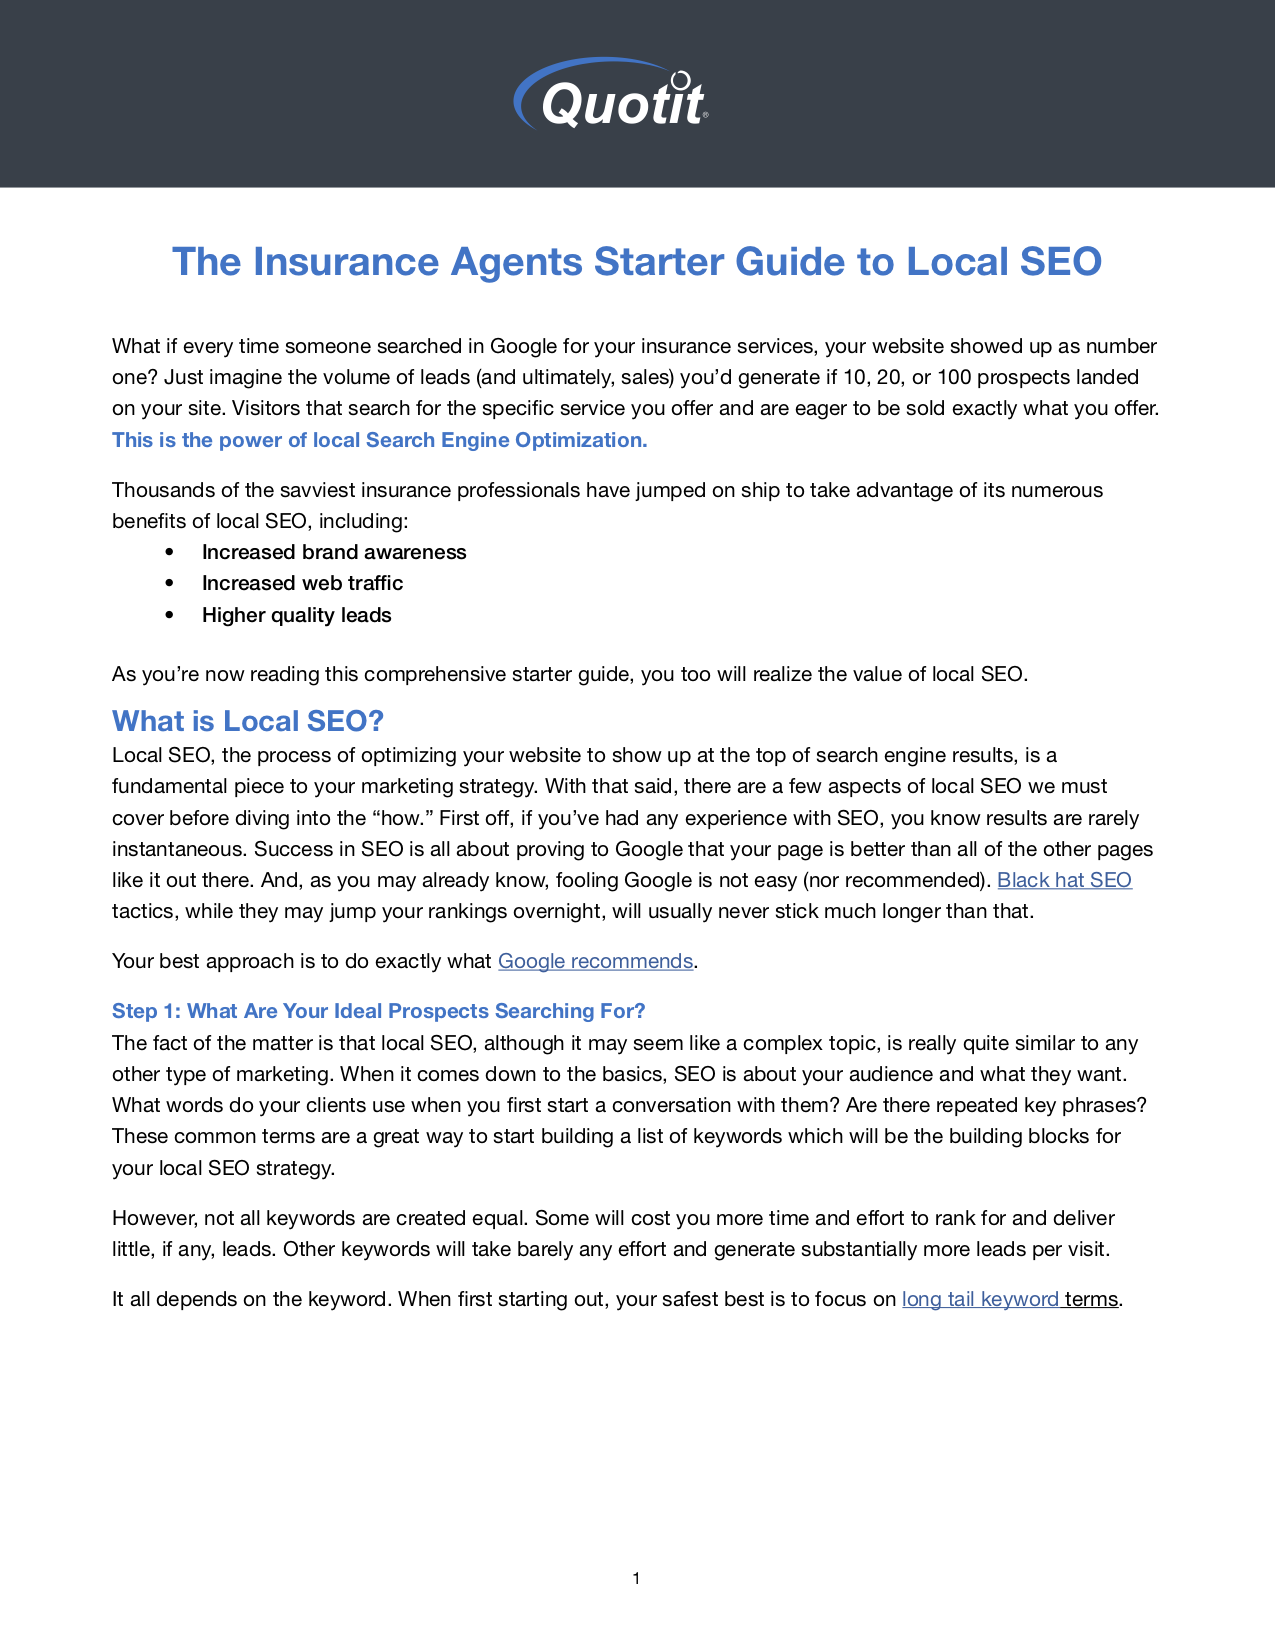 Local-SEO-for-Brokers-whitepaper (cover)